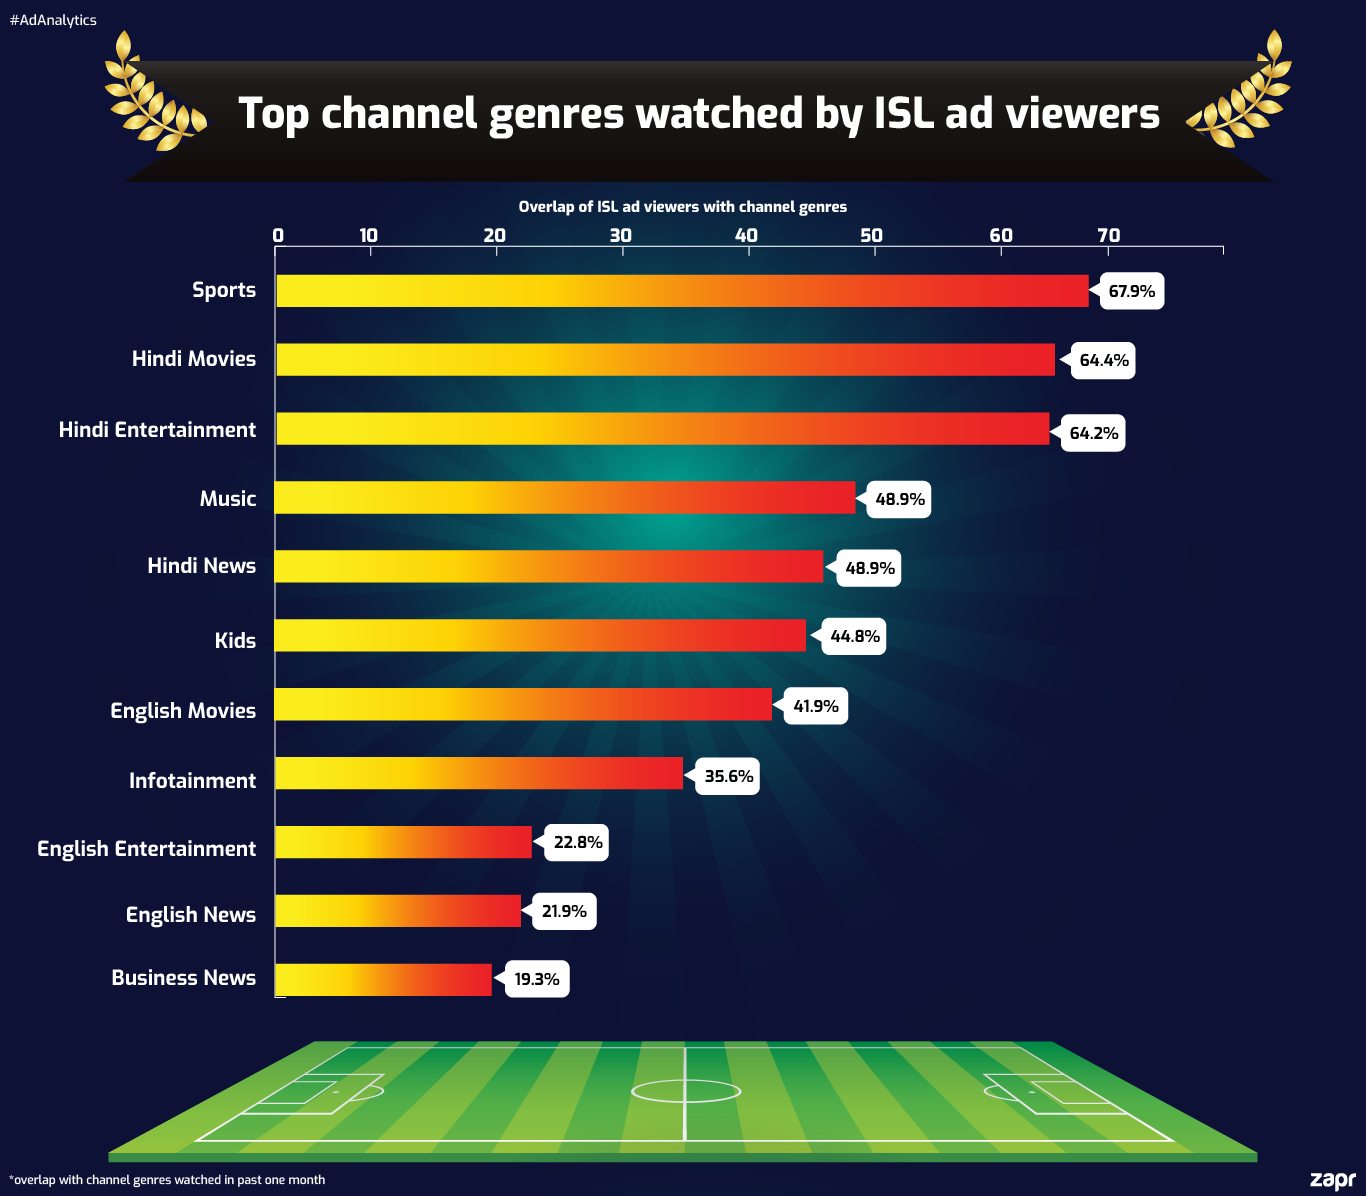 ISL football viewers channel genres content affinity